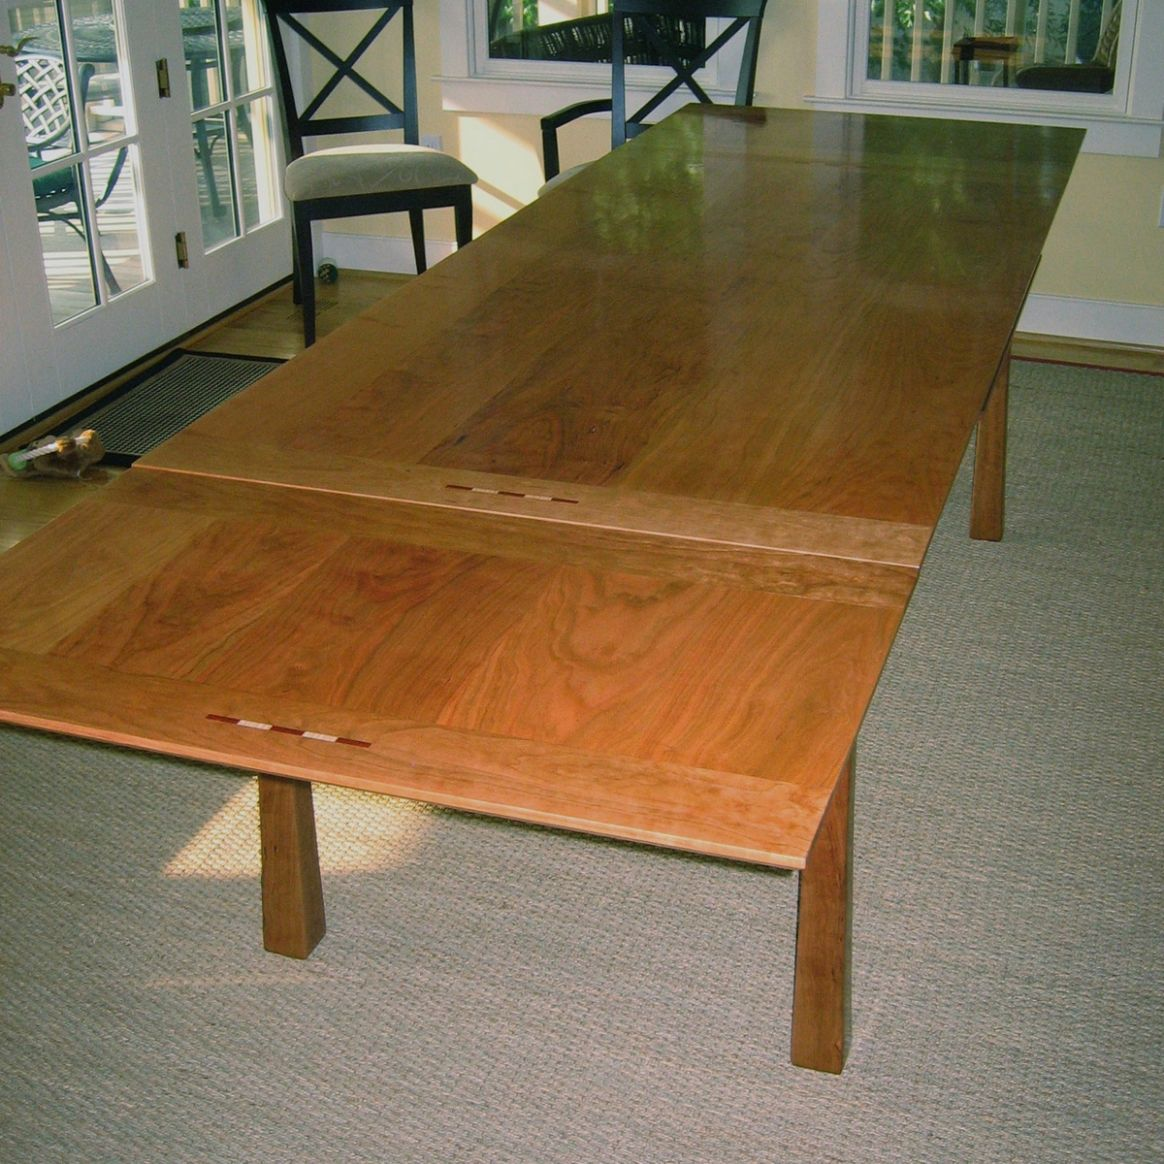 Ideas for Space-Saving Extension Tables - Made by CustomMade - dining room table extension ideas